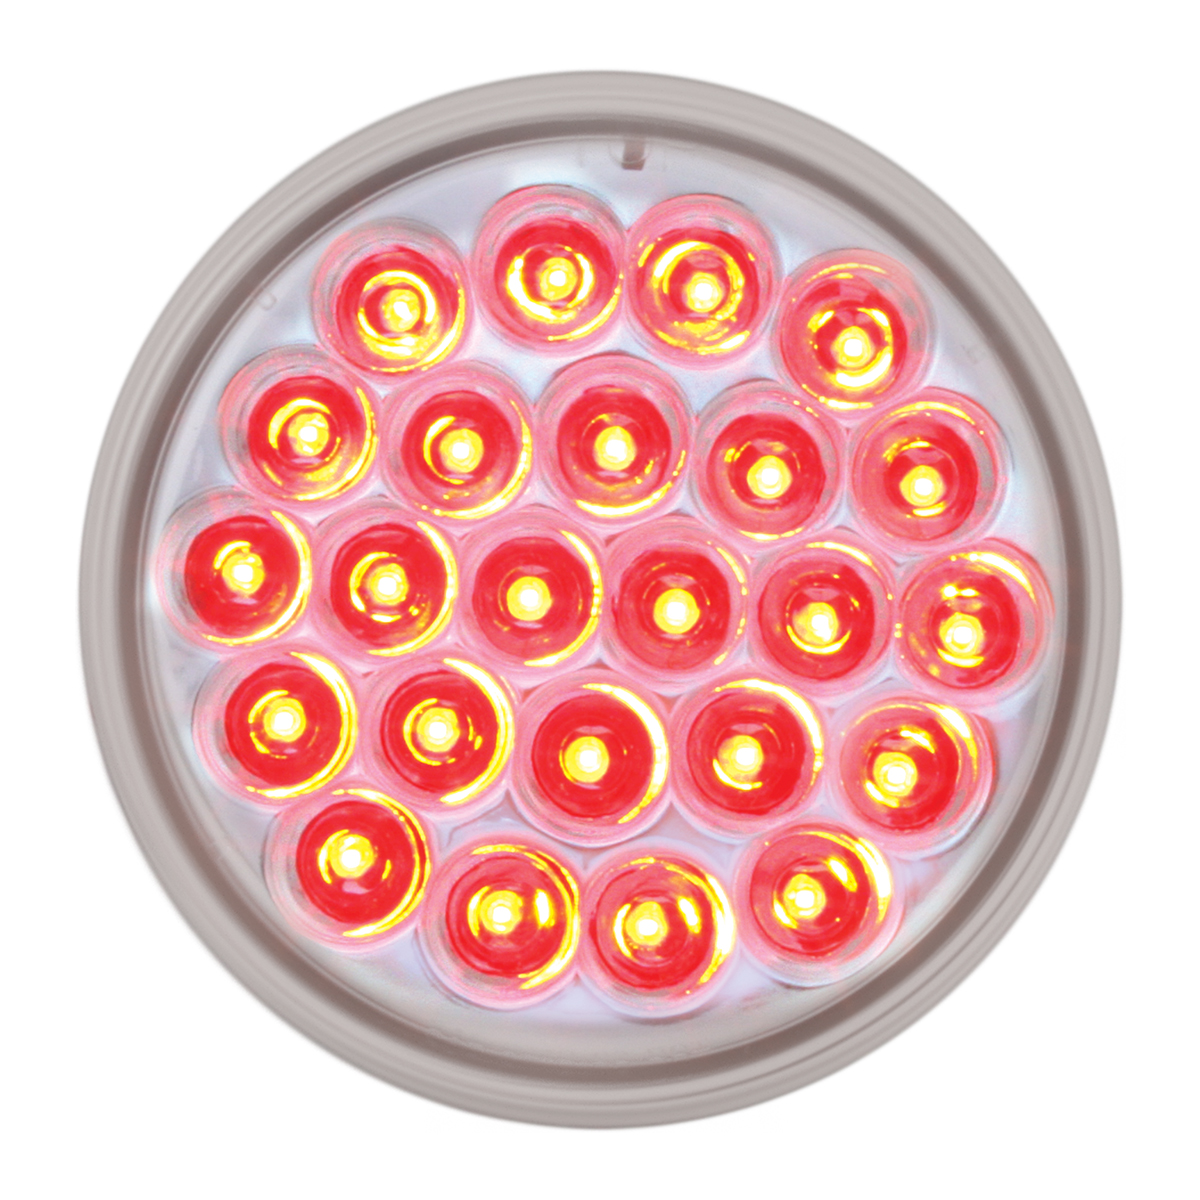 "76508 4"" Round Continuous Pearl LED Strobe Light"